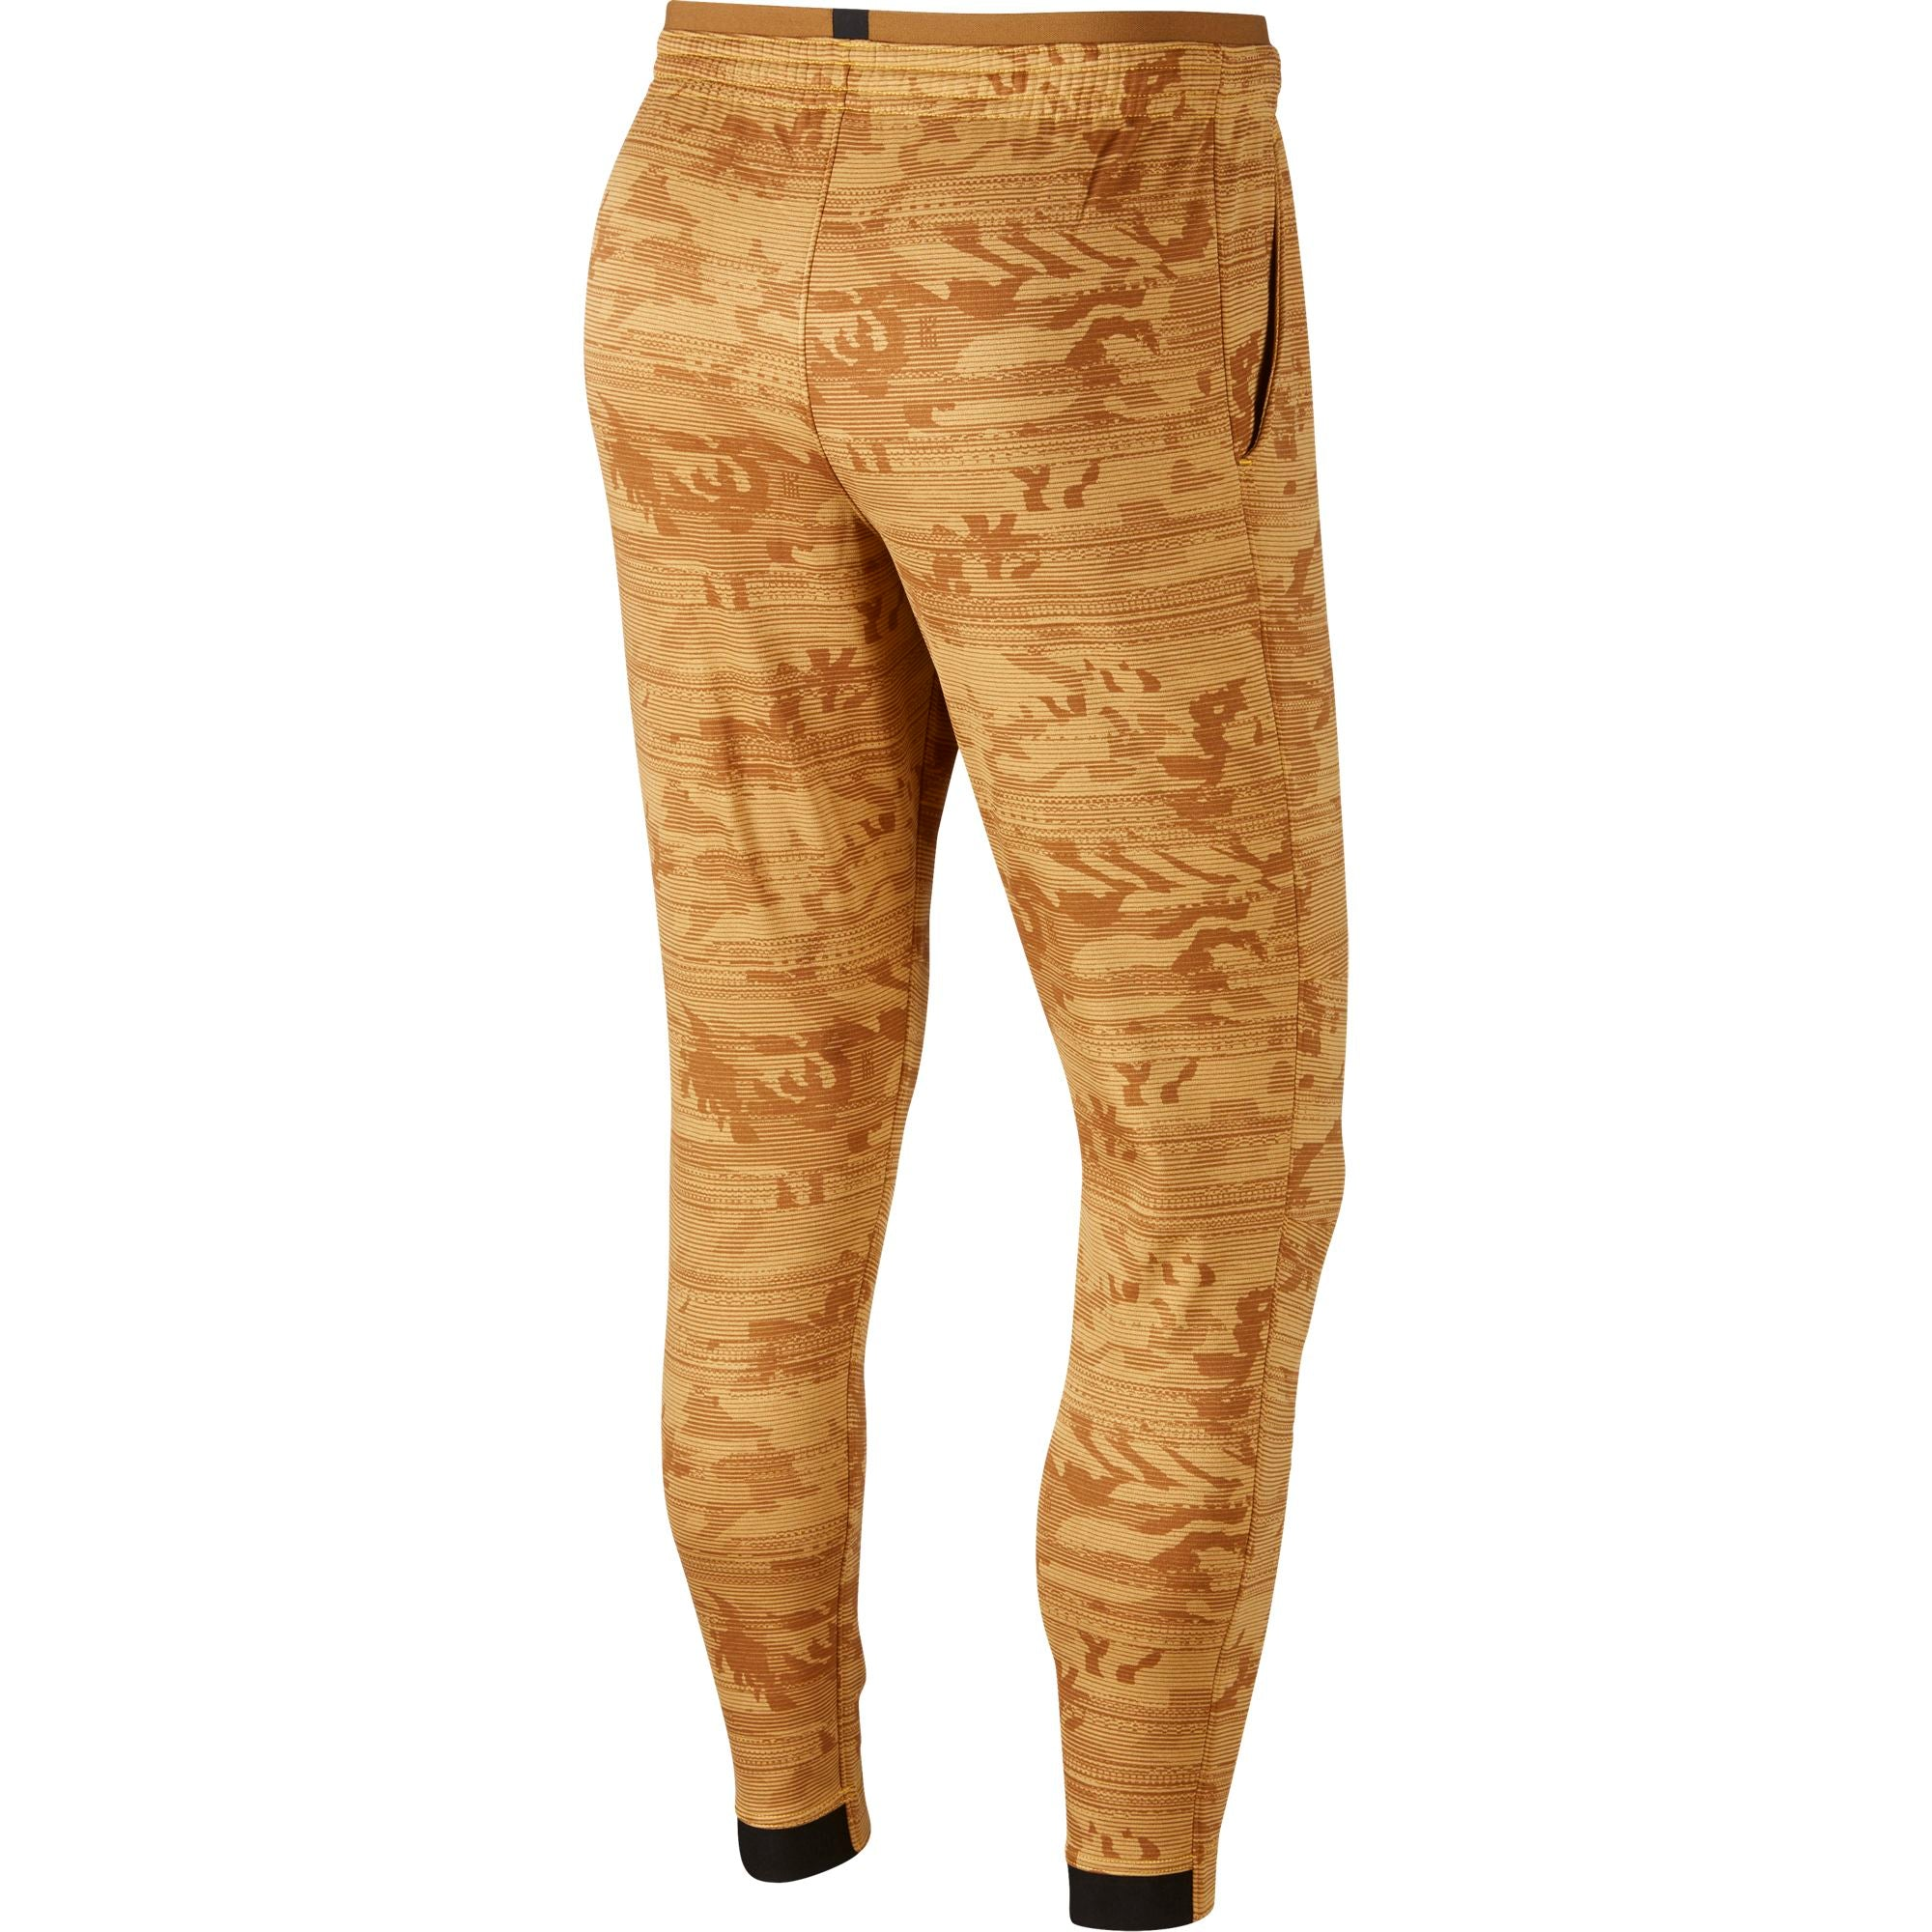 Nike Kyrie Dry Basketball Pants - Elemental Gold/Black